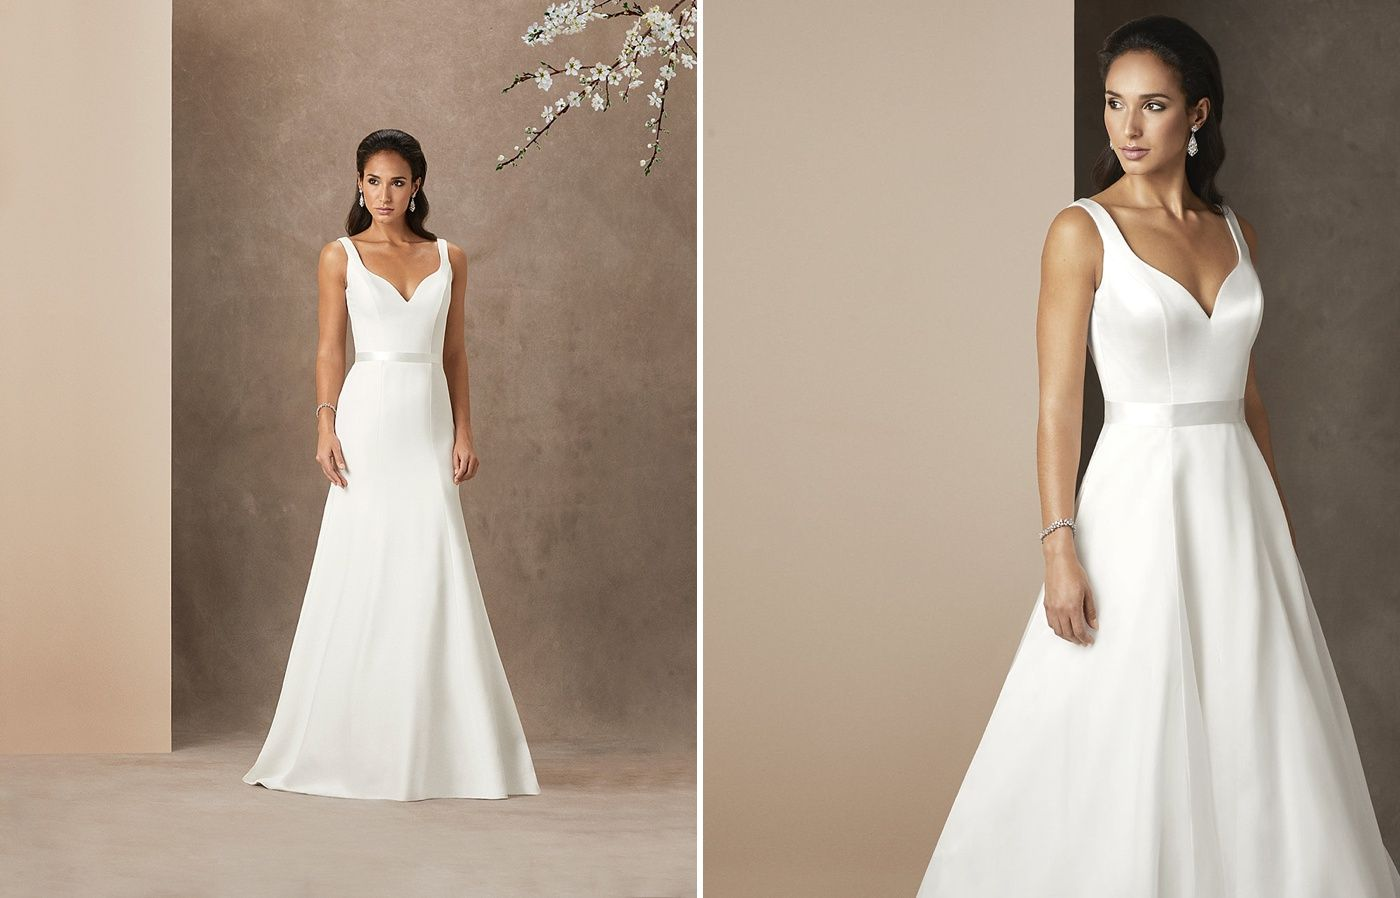 Caroline Castigliano Uk Wedding Dress Designer With Exquisite Structure And Fit For The Classi Classic Wedding Dress Wedding Dresses Uk Elegant Wedding Dress